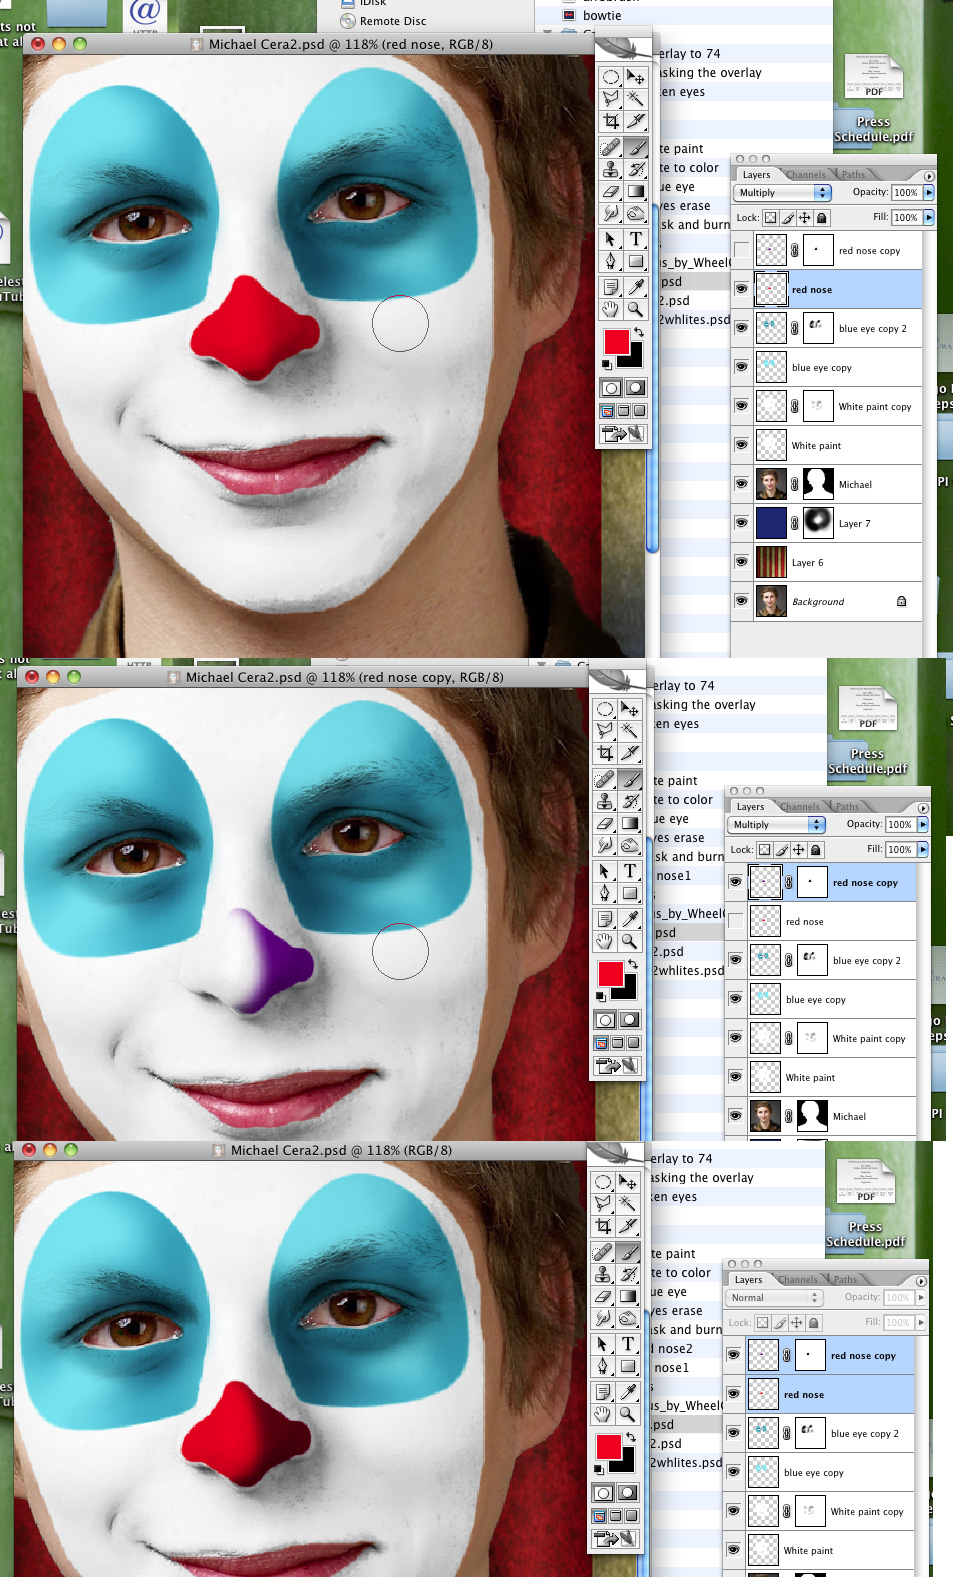 how to send to back in gimp the layer